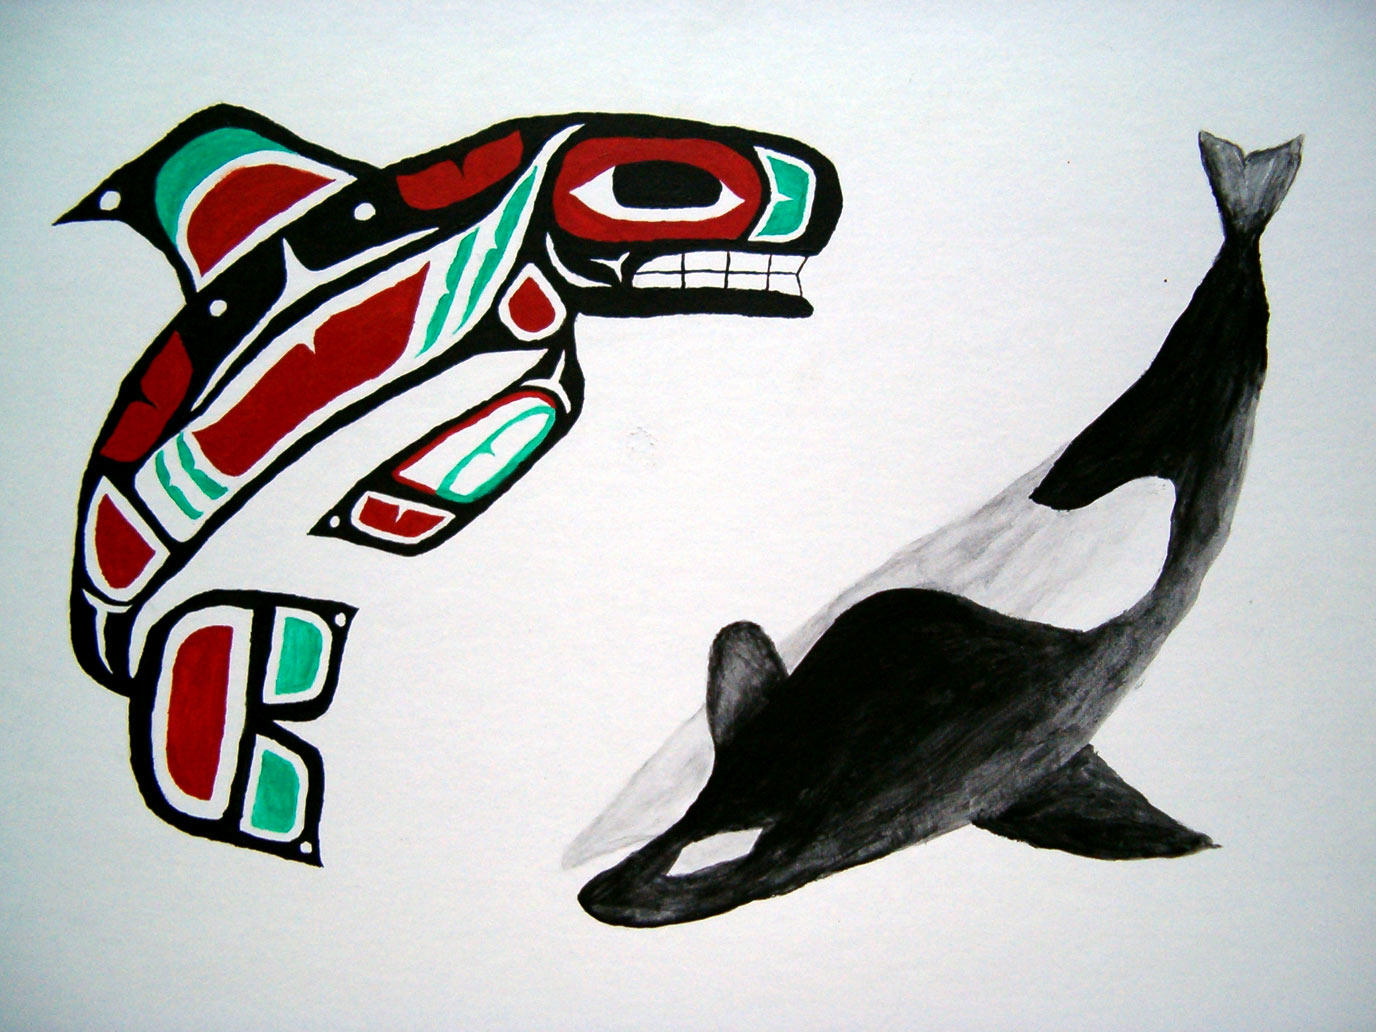 Tlingit killer whale by ahlana on deviantart tlingit killer whale by ahlana tlingit killer whale by ahlana buycottarizona